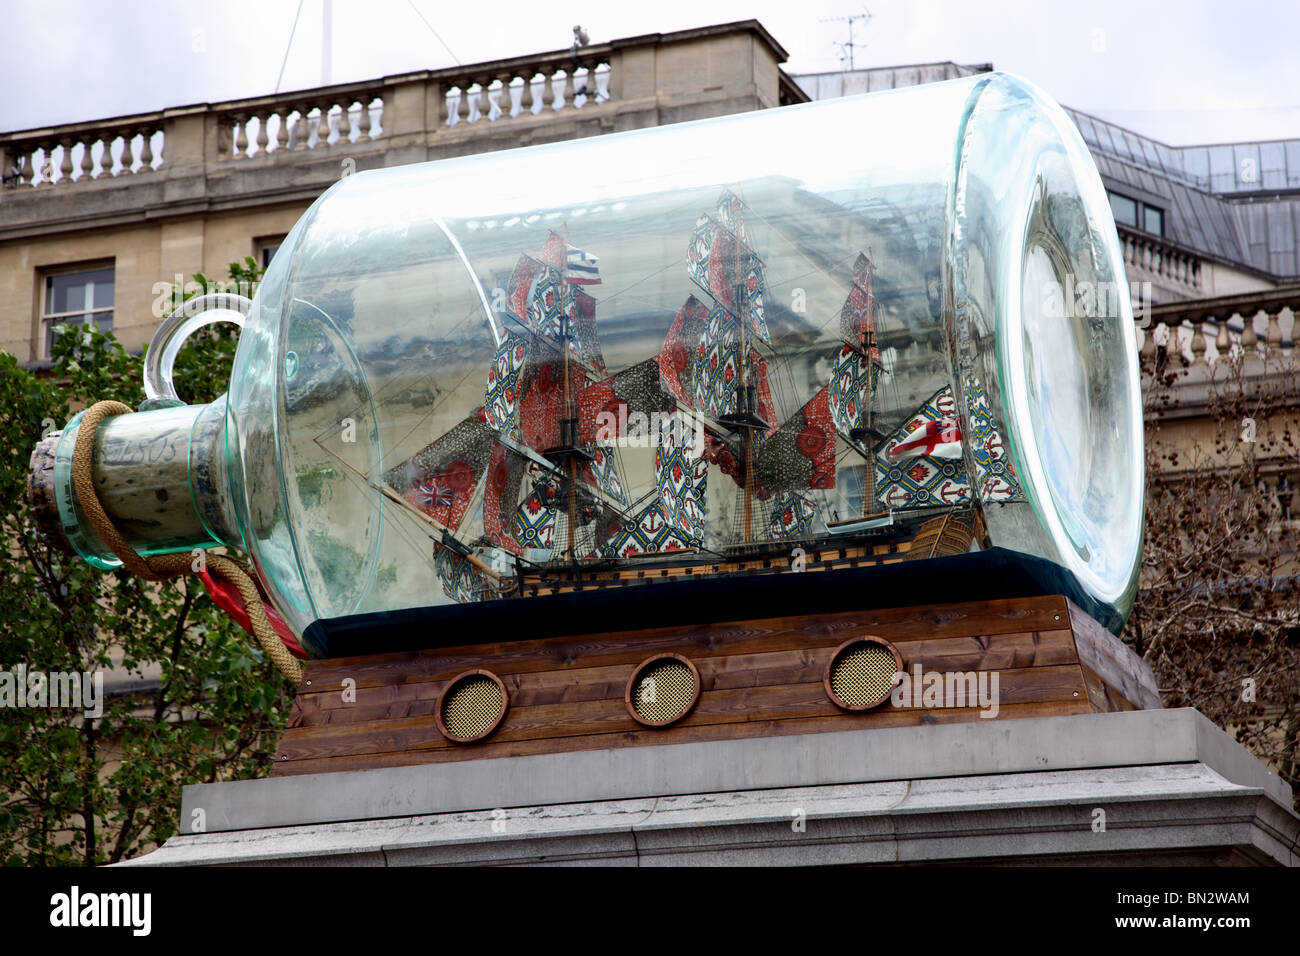 Artist Yinka Shonibare's art work, Nelson's Ship In A Bottle, on the fourth plinth in Trafalgar Square, Westminster, - Stock Image